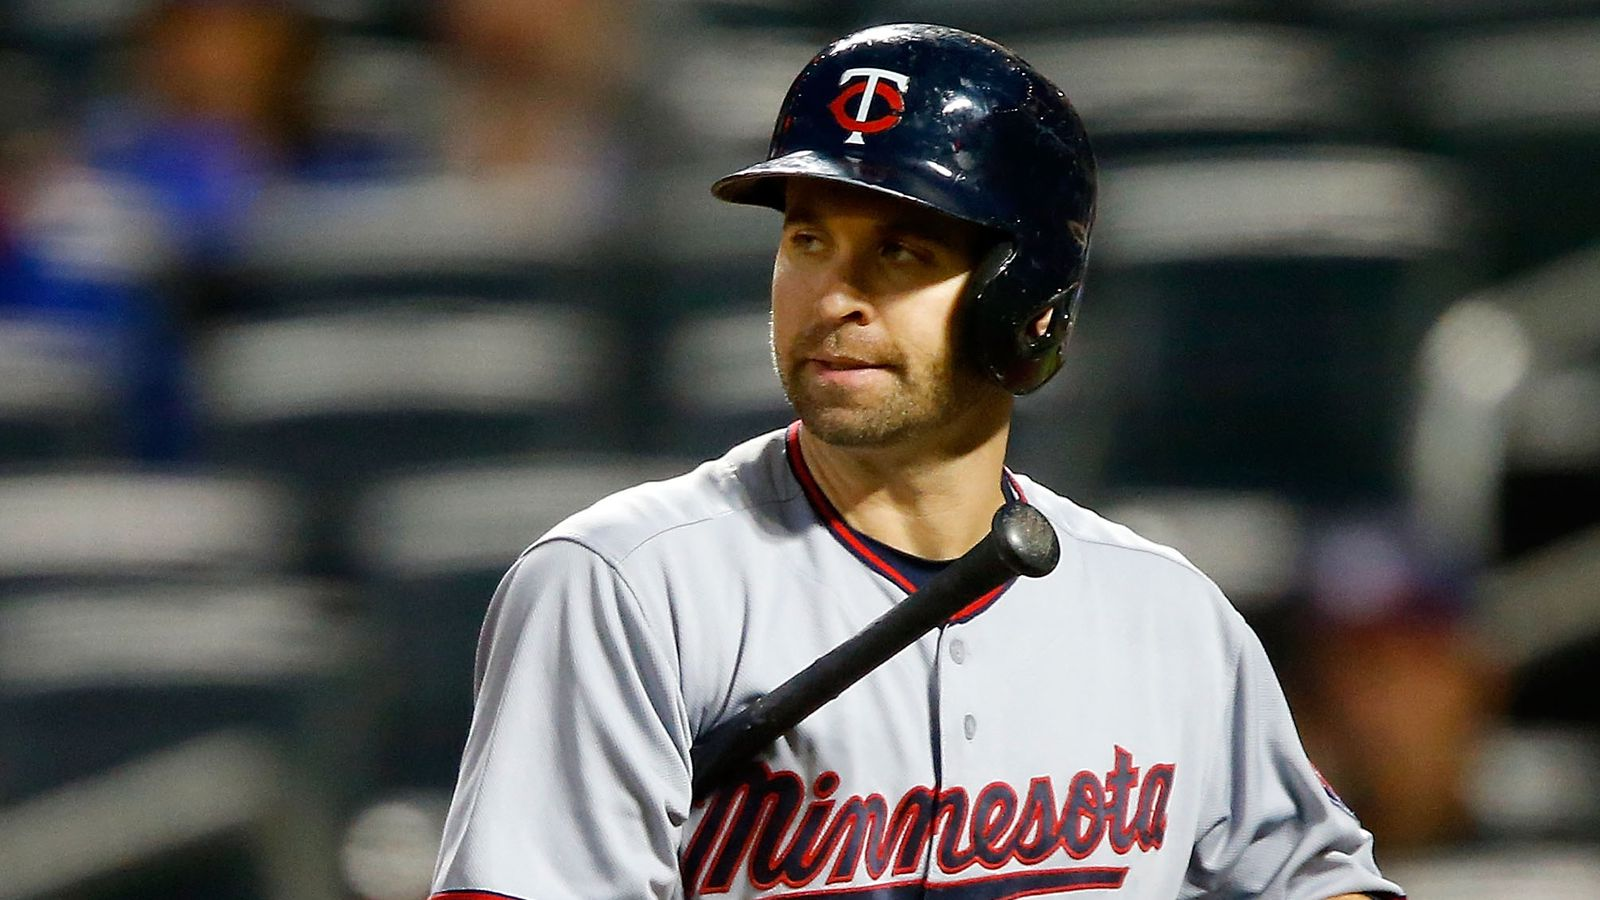 The Dodgers are at an 'impasse' with the Twins and Brian Dozier